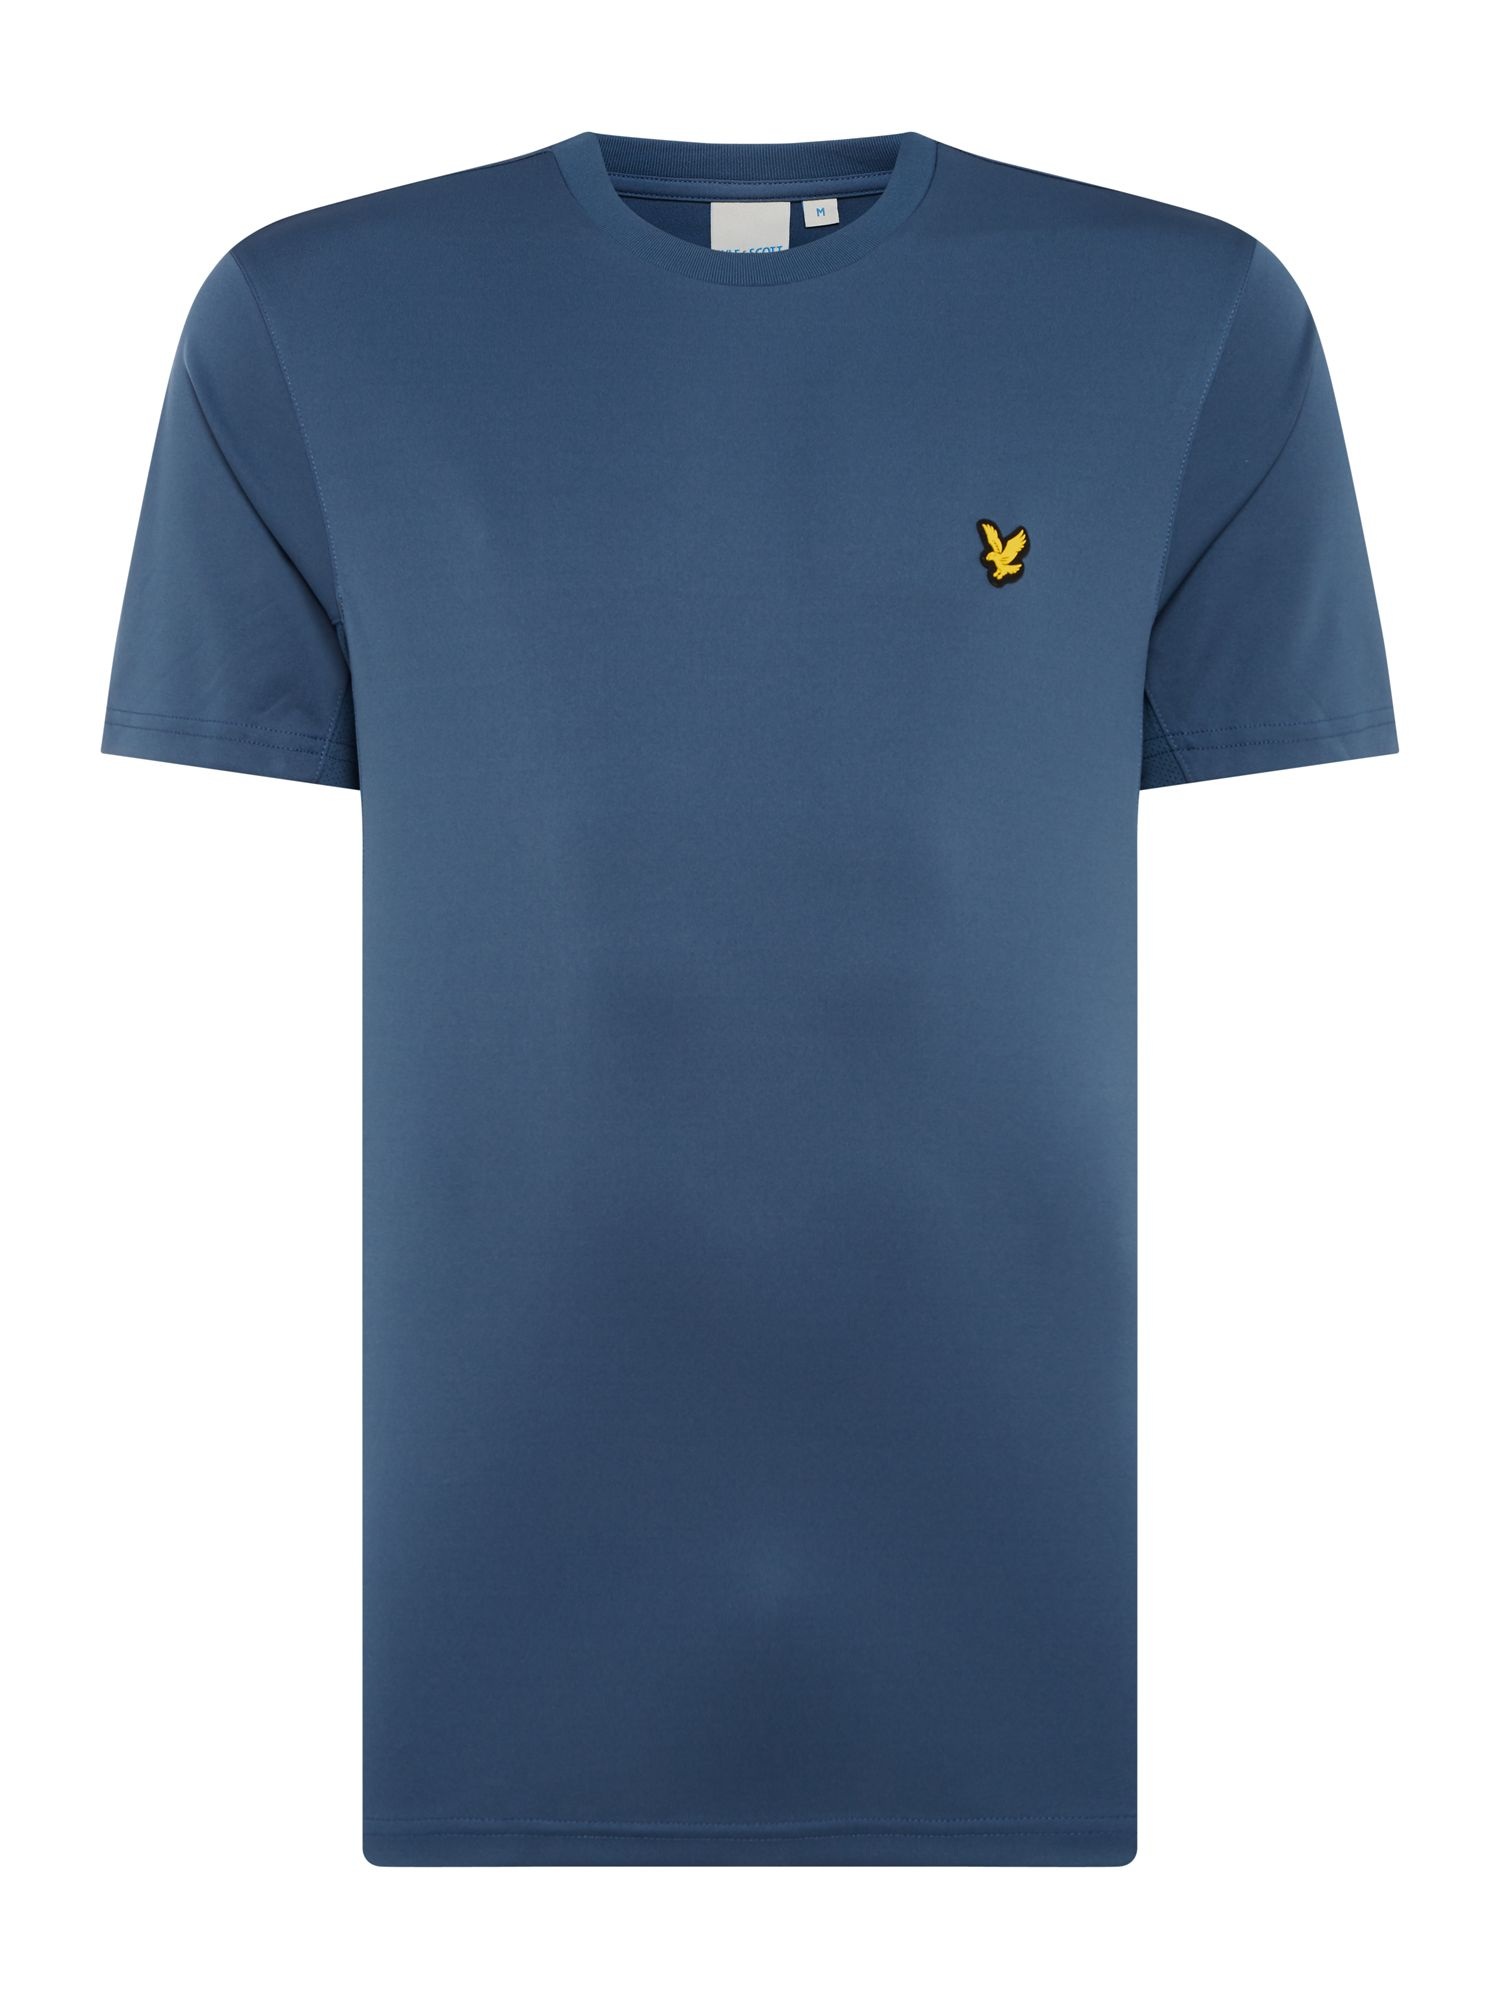 Men's Lyle and Scott Sports Crew-Neck Short-Sleeve T-Shirt, Oil Grey